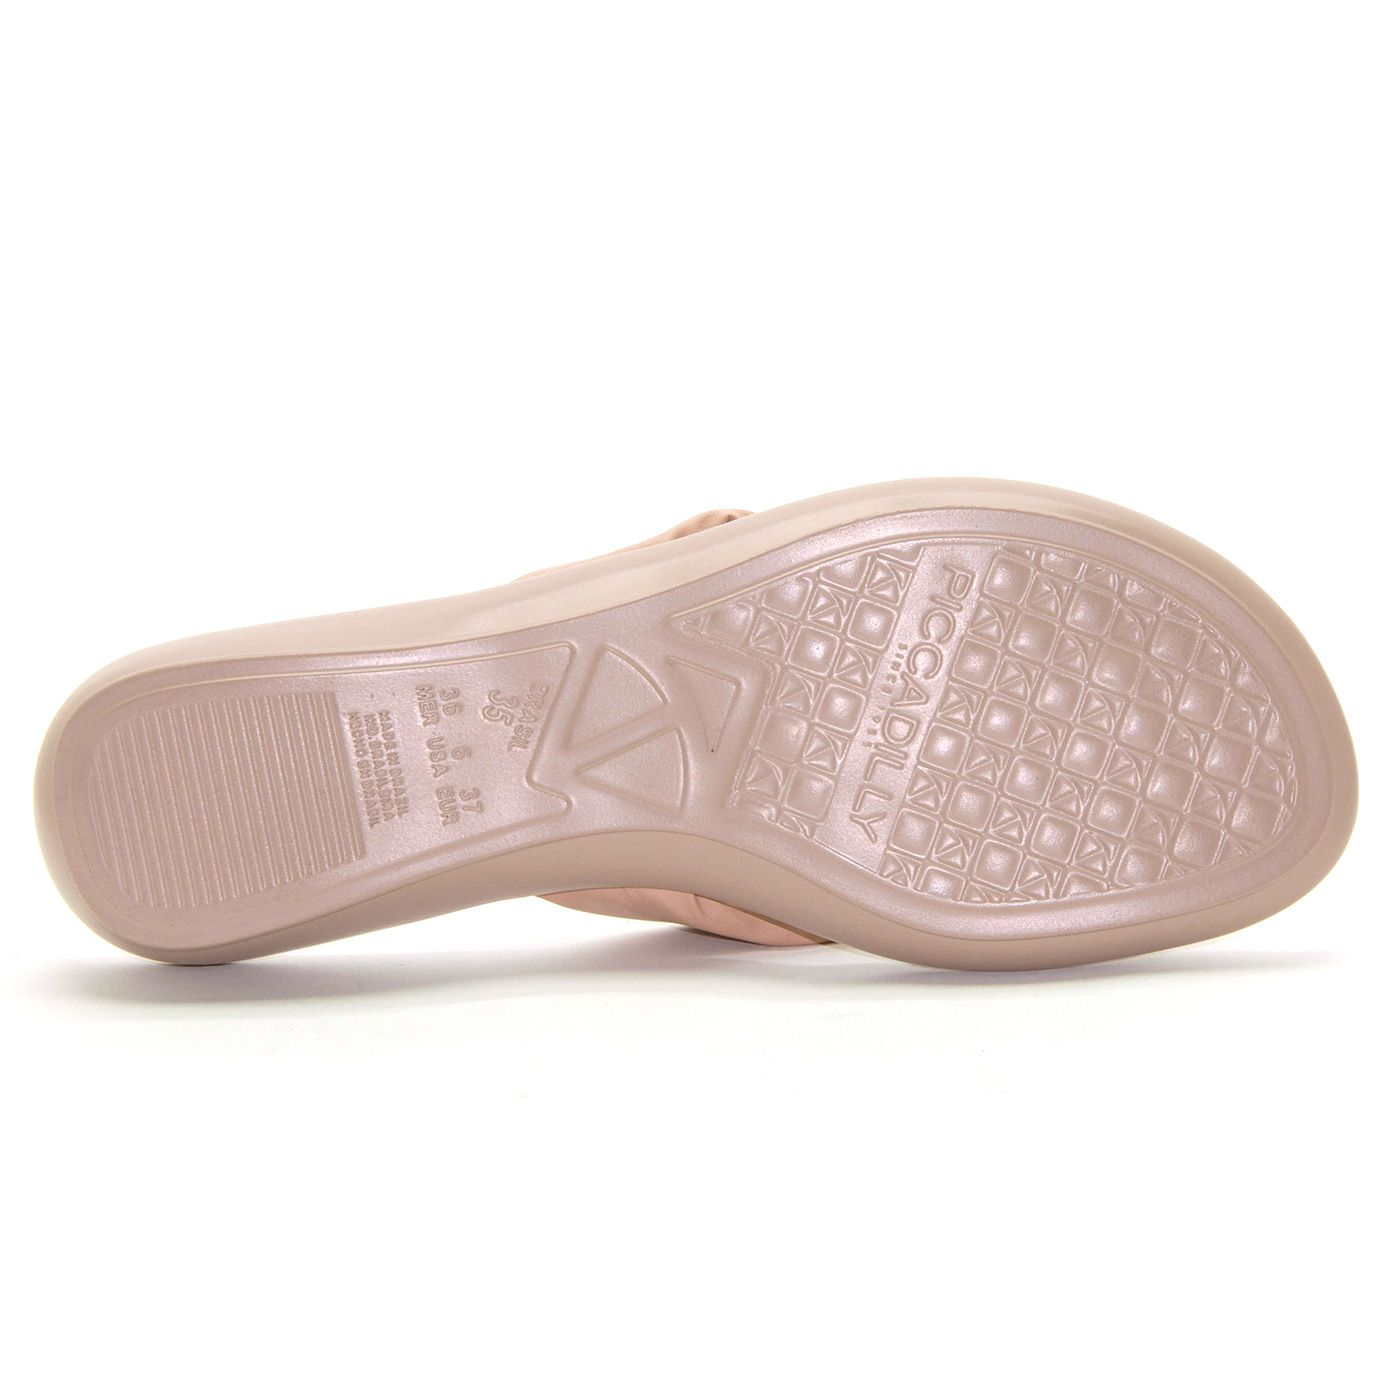 CHINELO PICCADILLY LISO - 500209